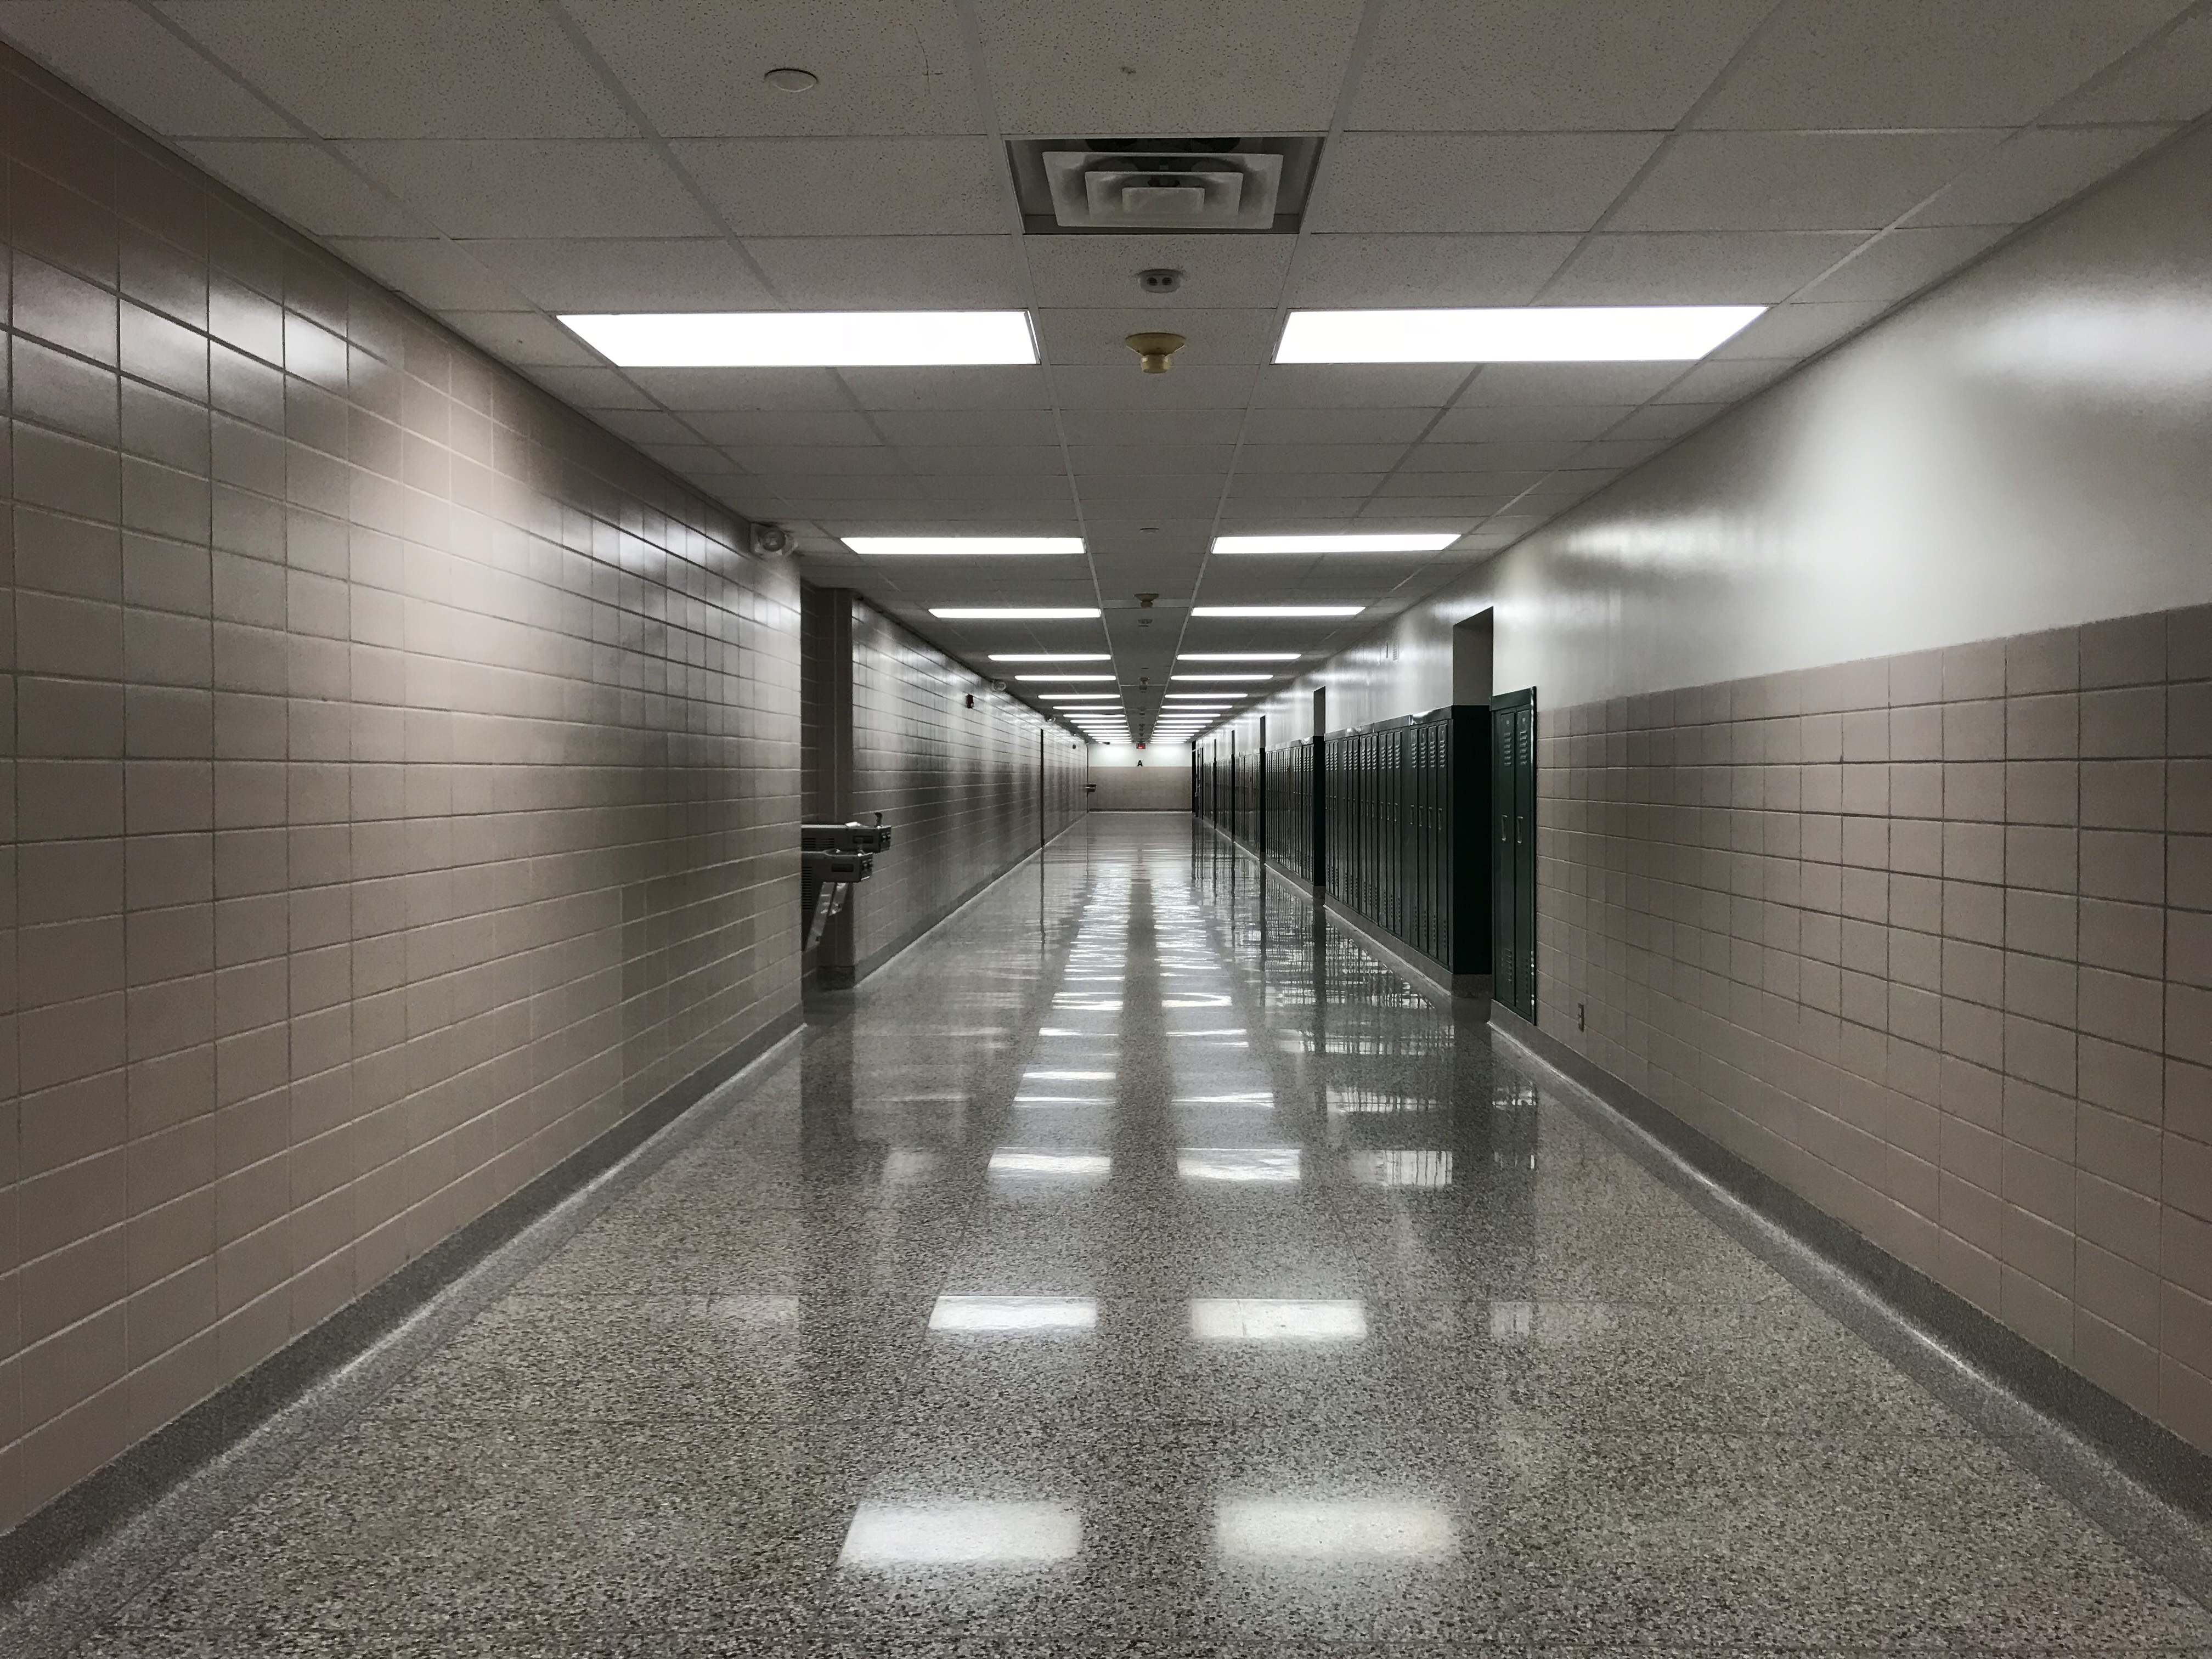 Hallways at Arlington High School are empty after the last day of school in 2018. The school is one of three Indianapolis high schools closing.